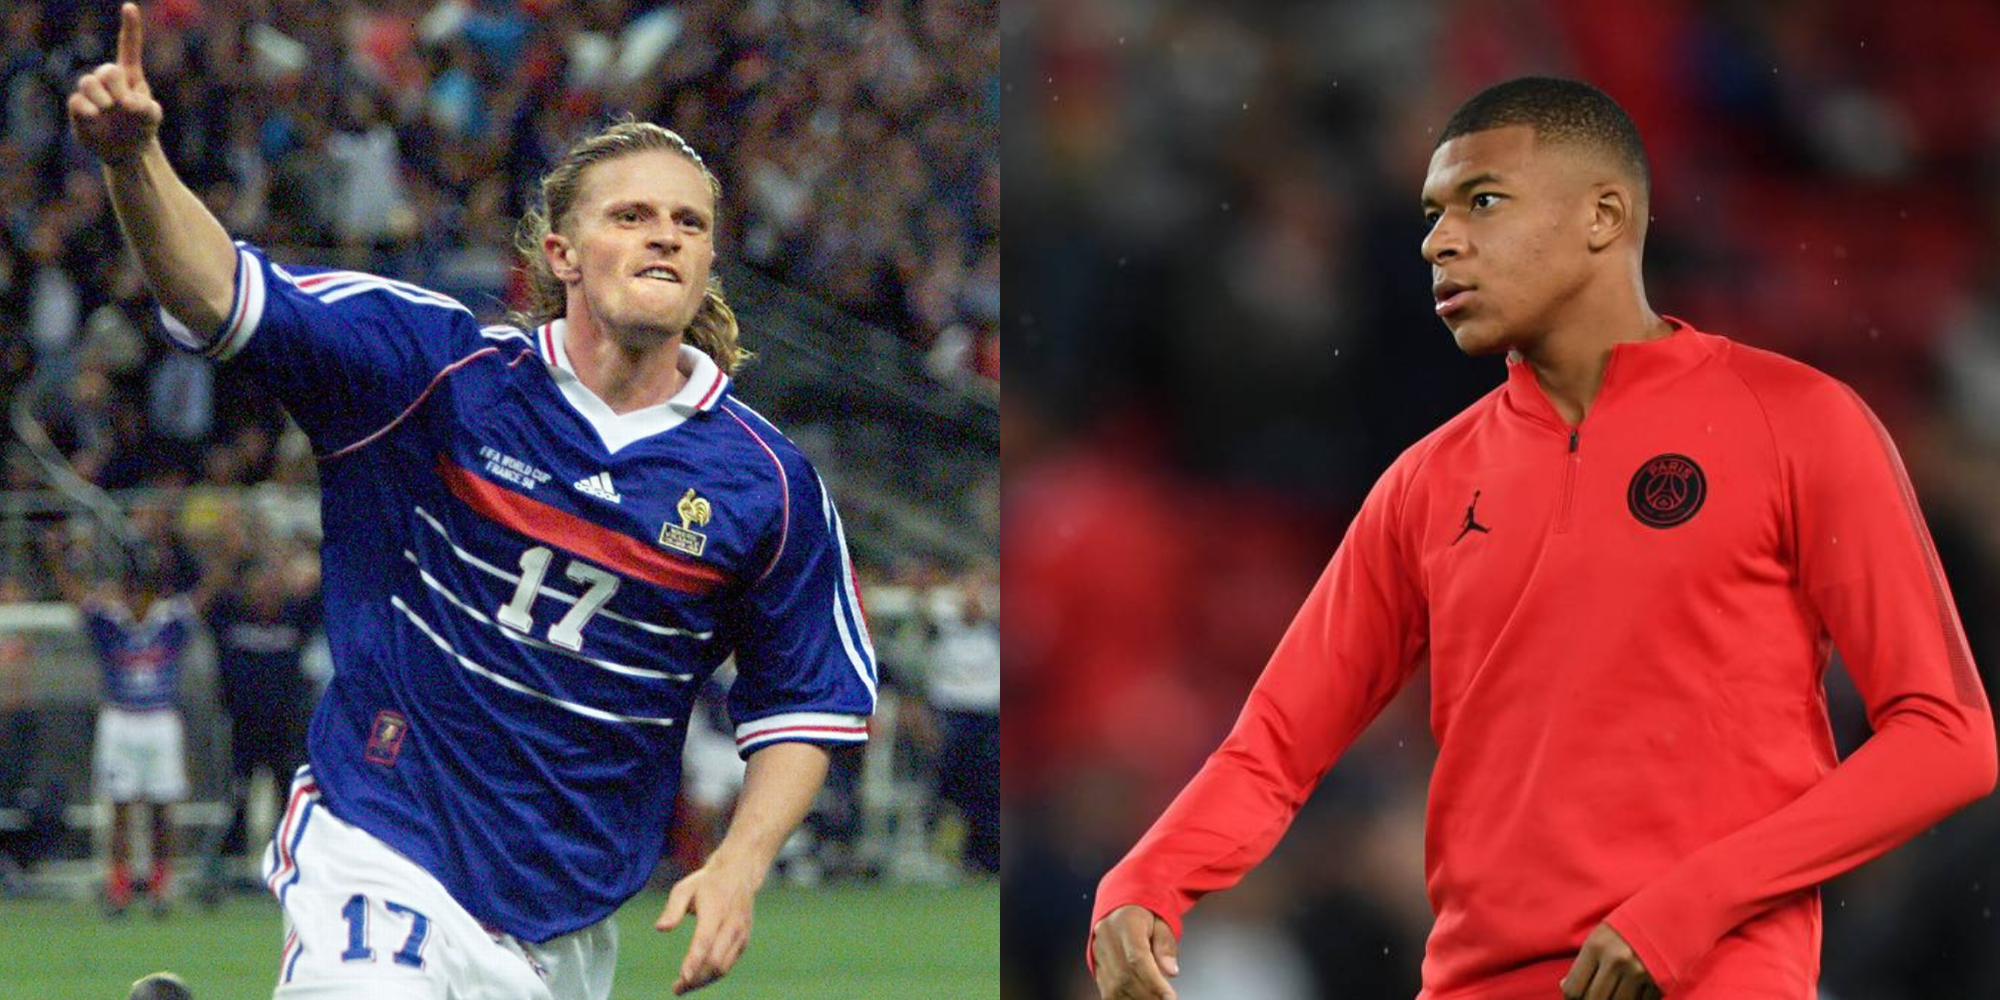 Kylian Mbappe urged to quit PSG & sign for Liverpool by France legend